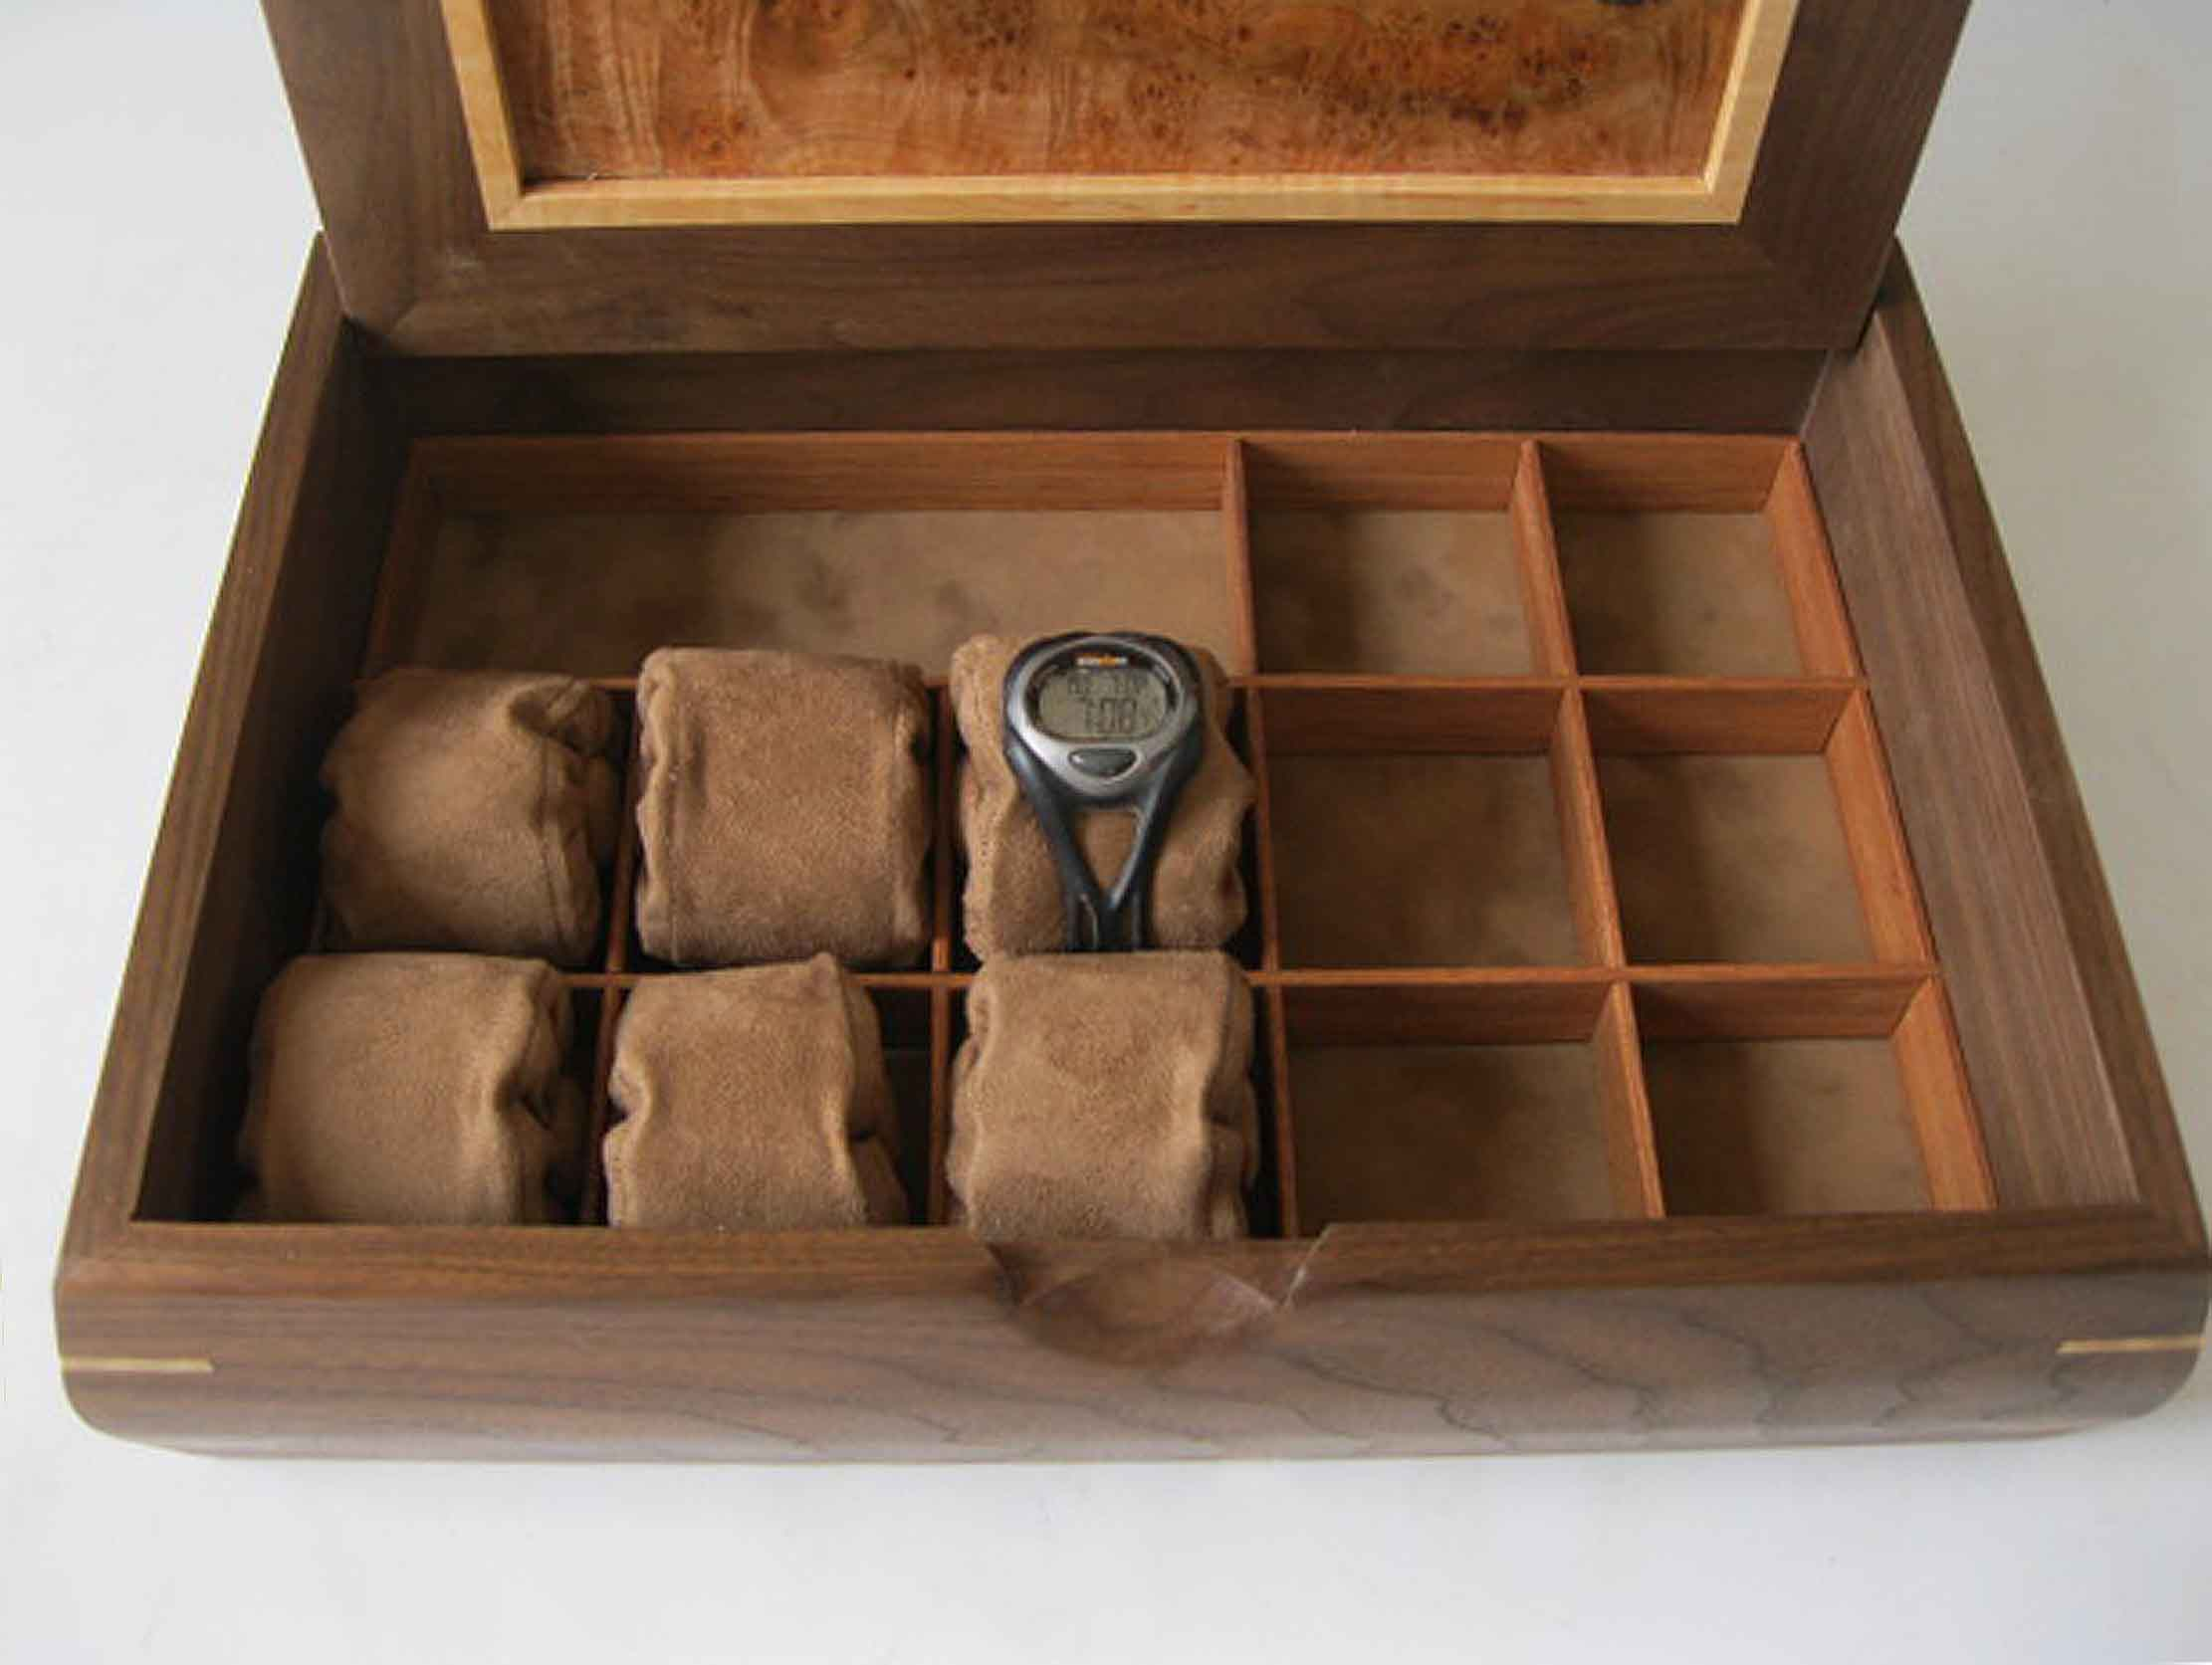 This watch jewelry box is handmade of black walnut; the optional watch rolls are perfect for storing watches